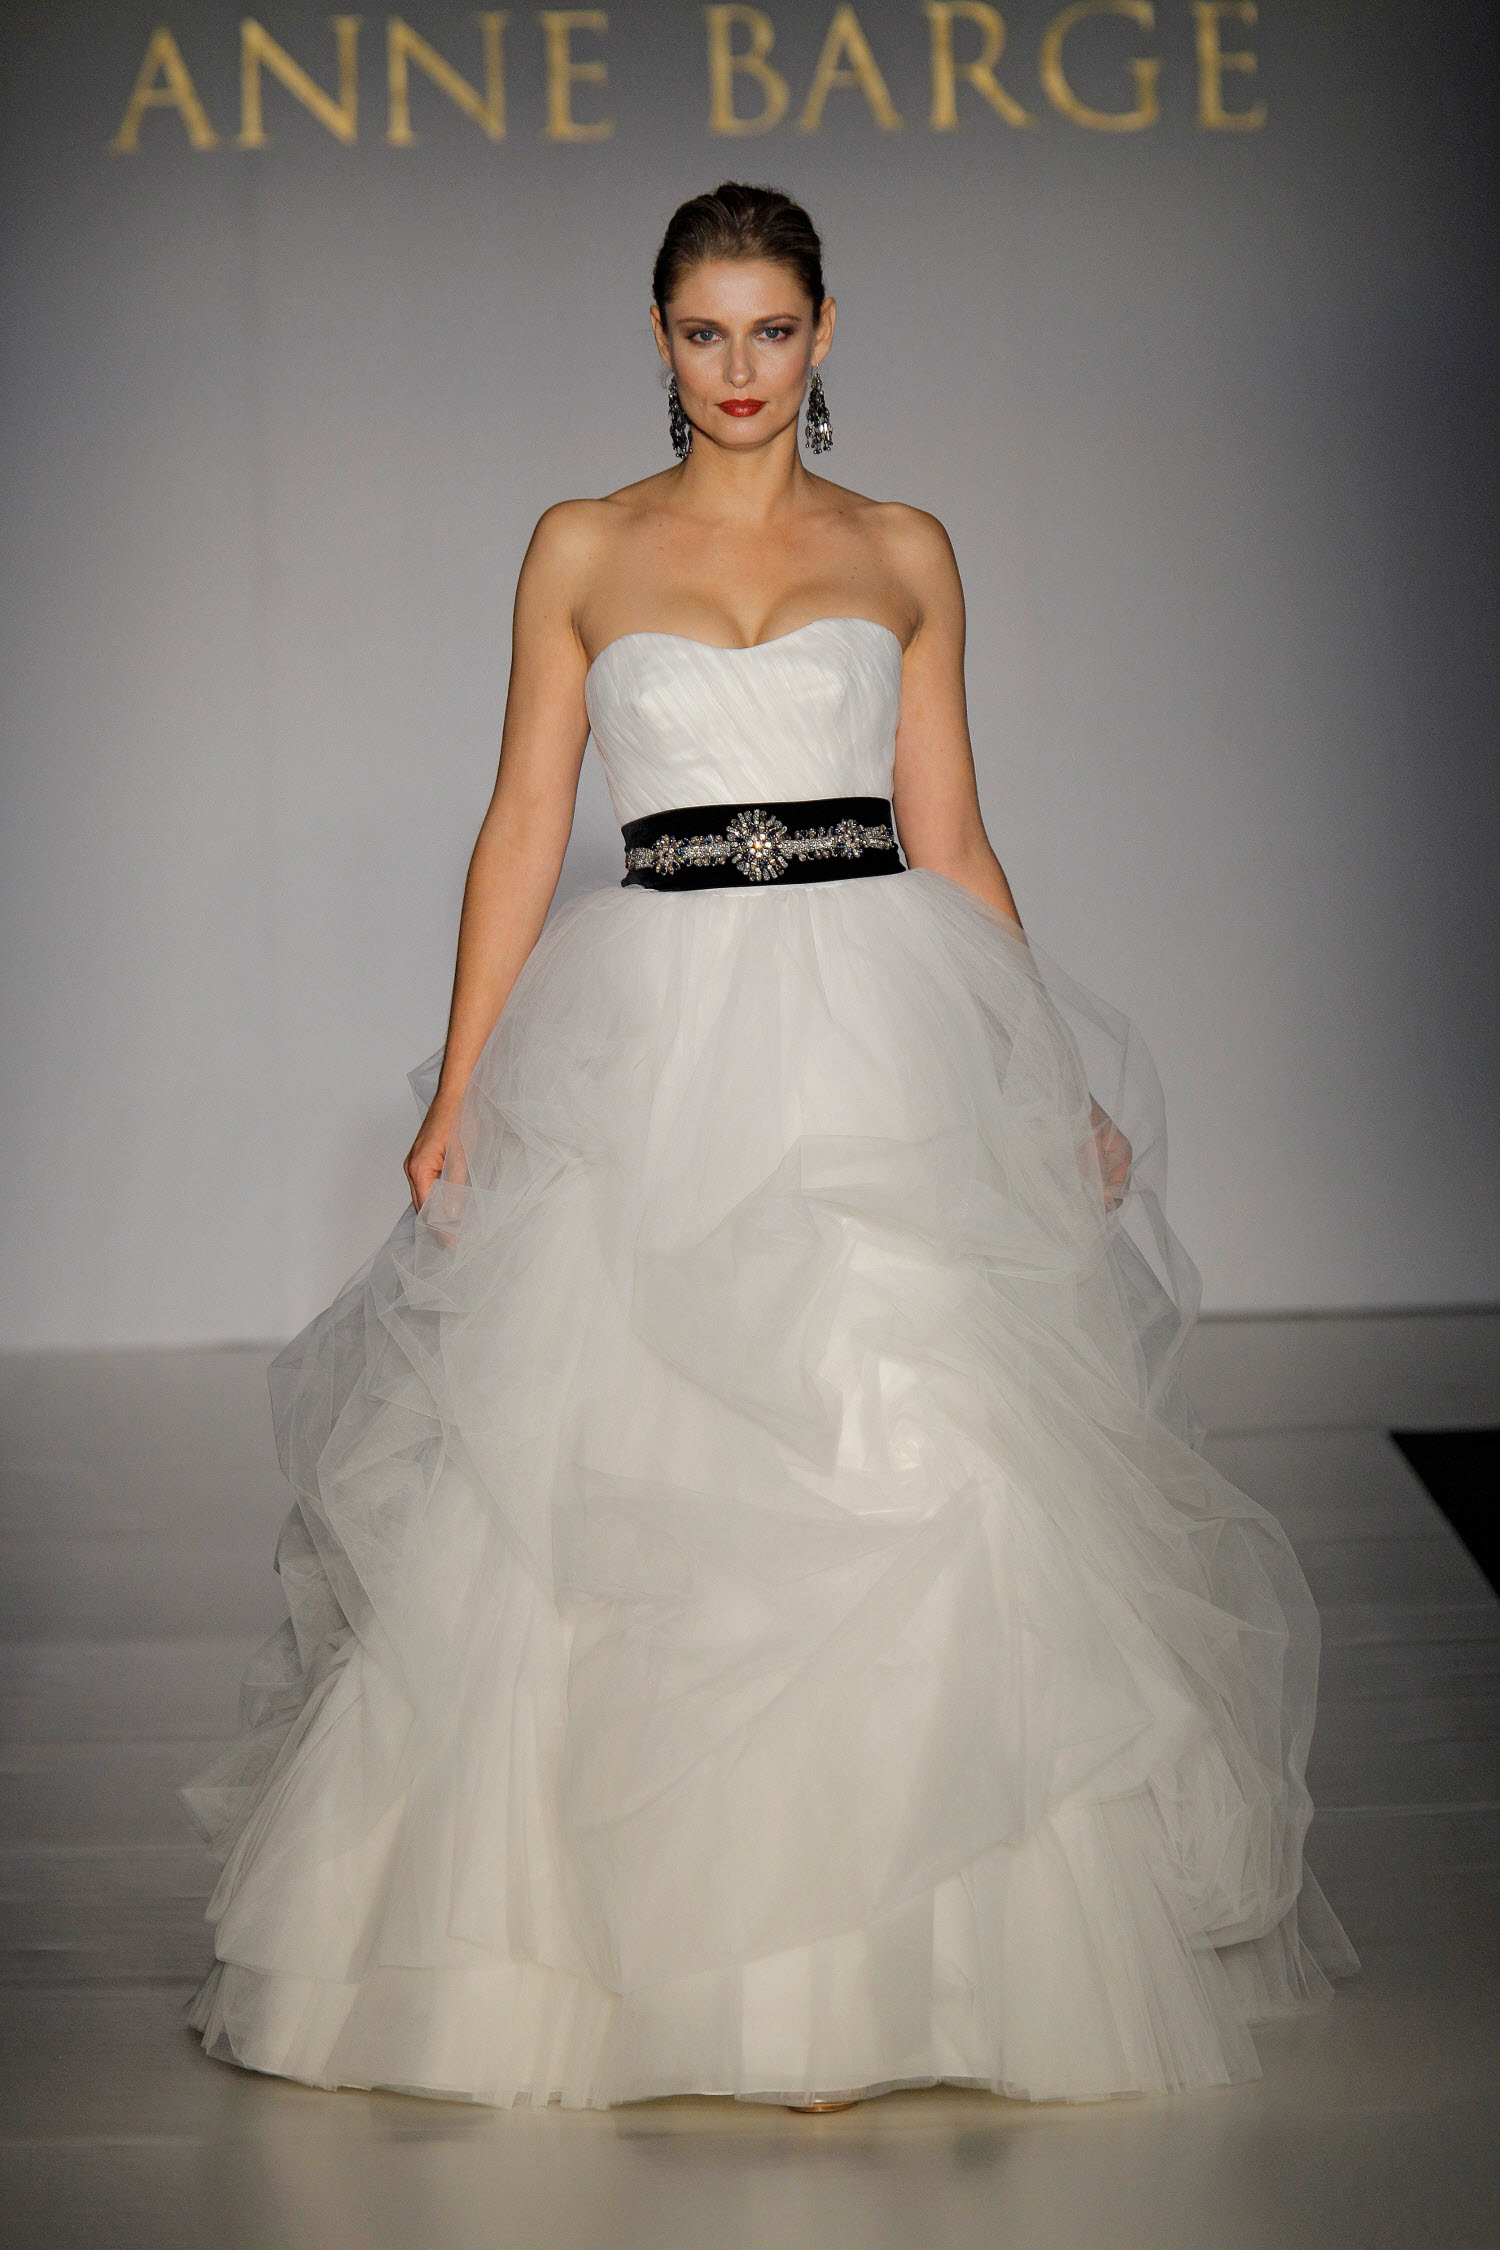 Fall-2011-wedding-dresses-anne-barge-drew-bridal-gown-white-classic-black-bridal-sash-sweetheart-neckline.original